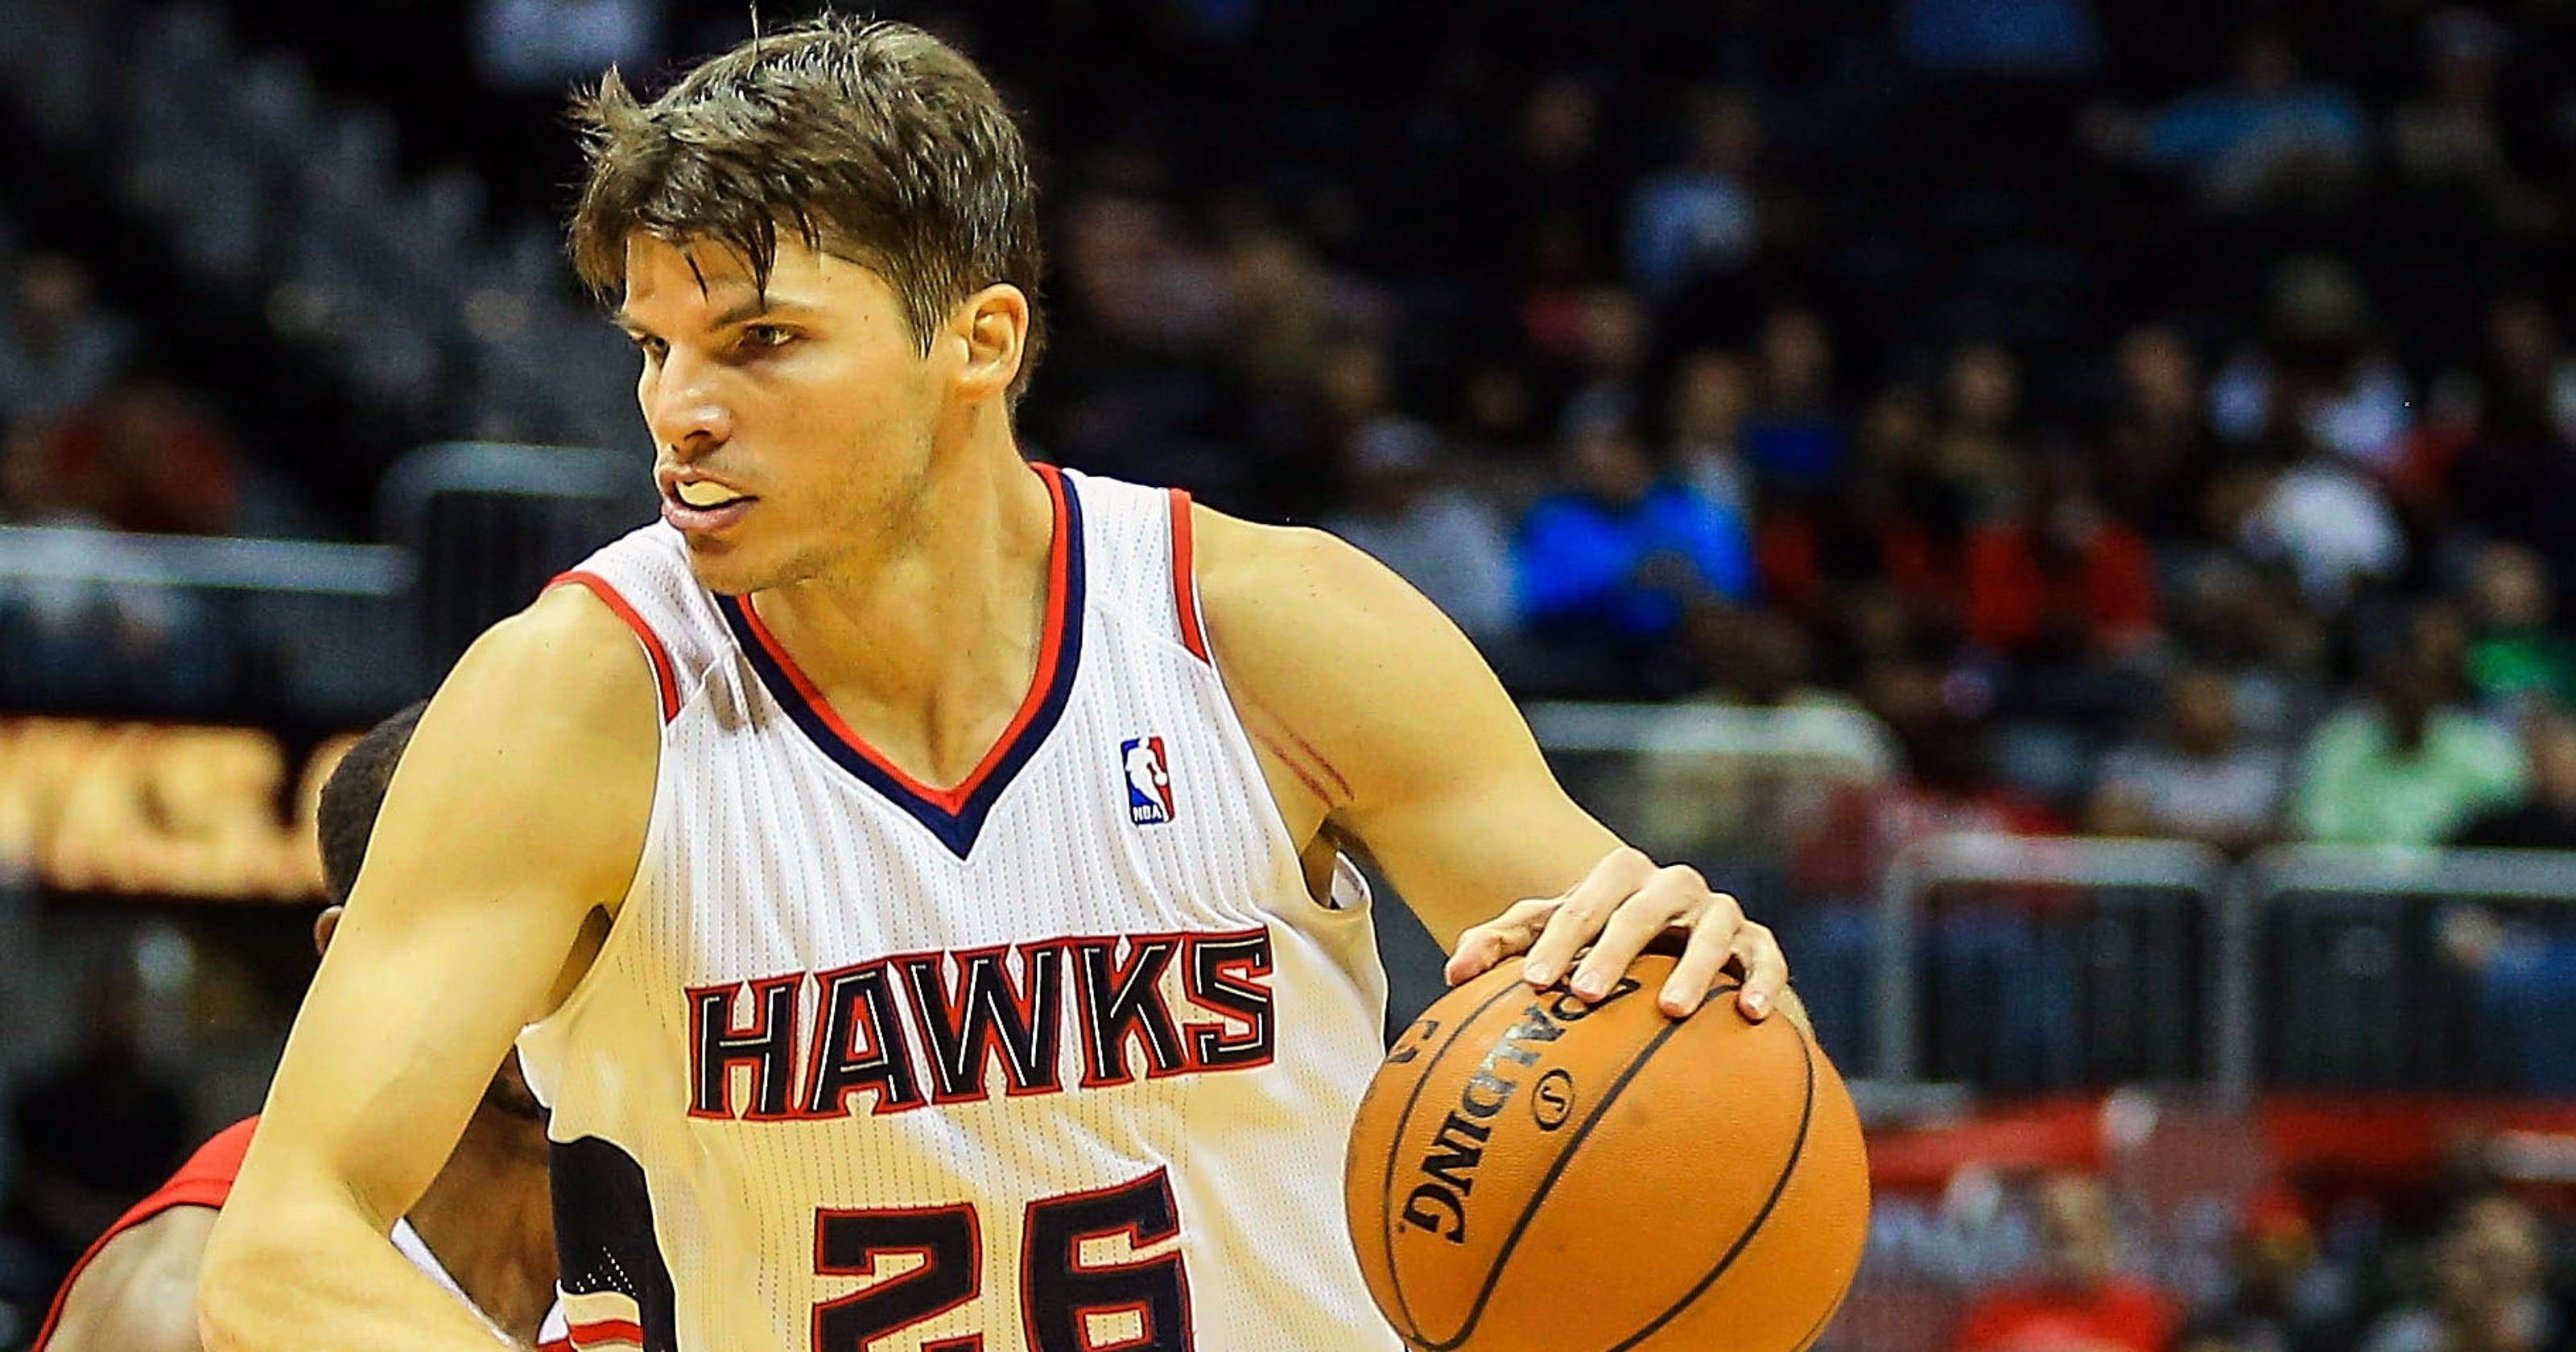 d5a0e37fdce6 Kyle Korver ties record three-pointer streak as Hawks top Clippers